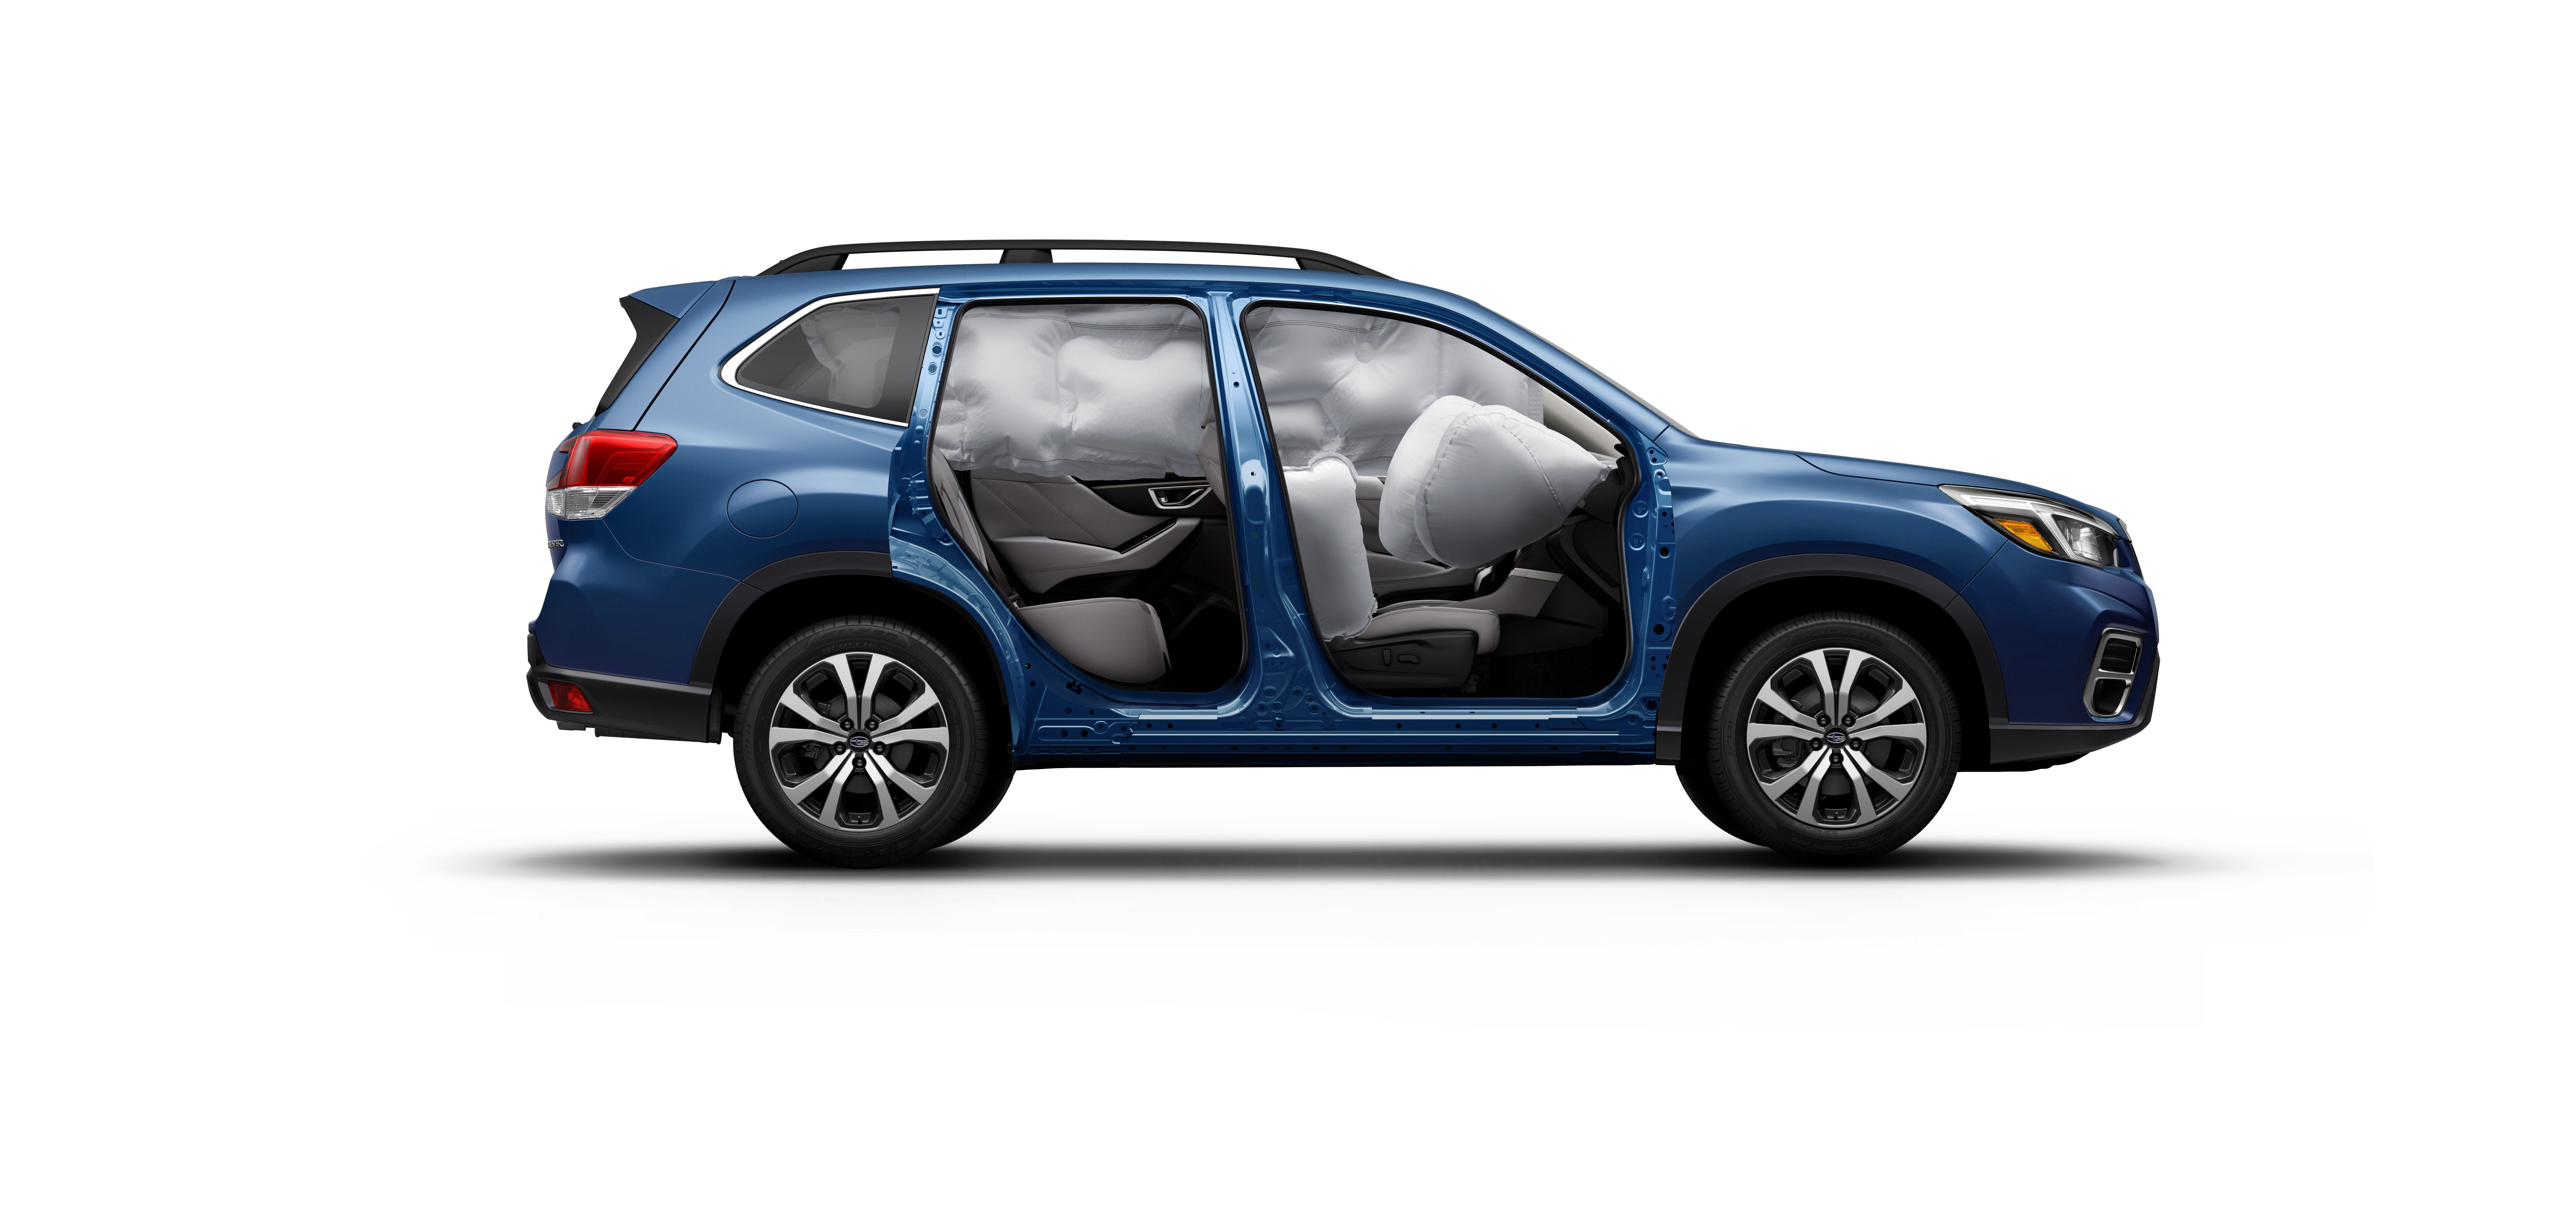 Subaru Forester safety rating